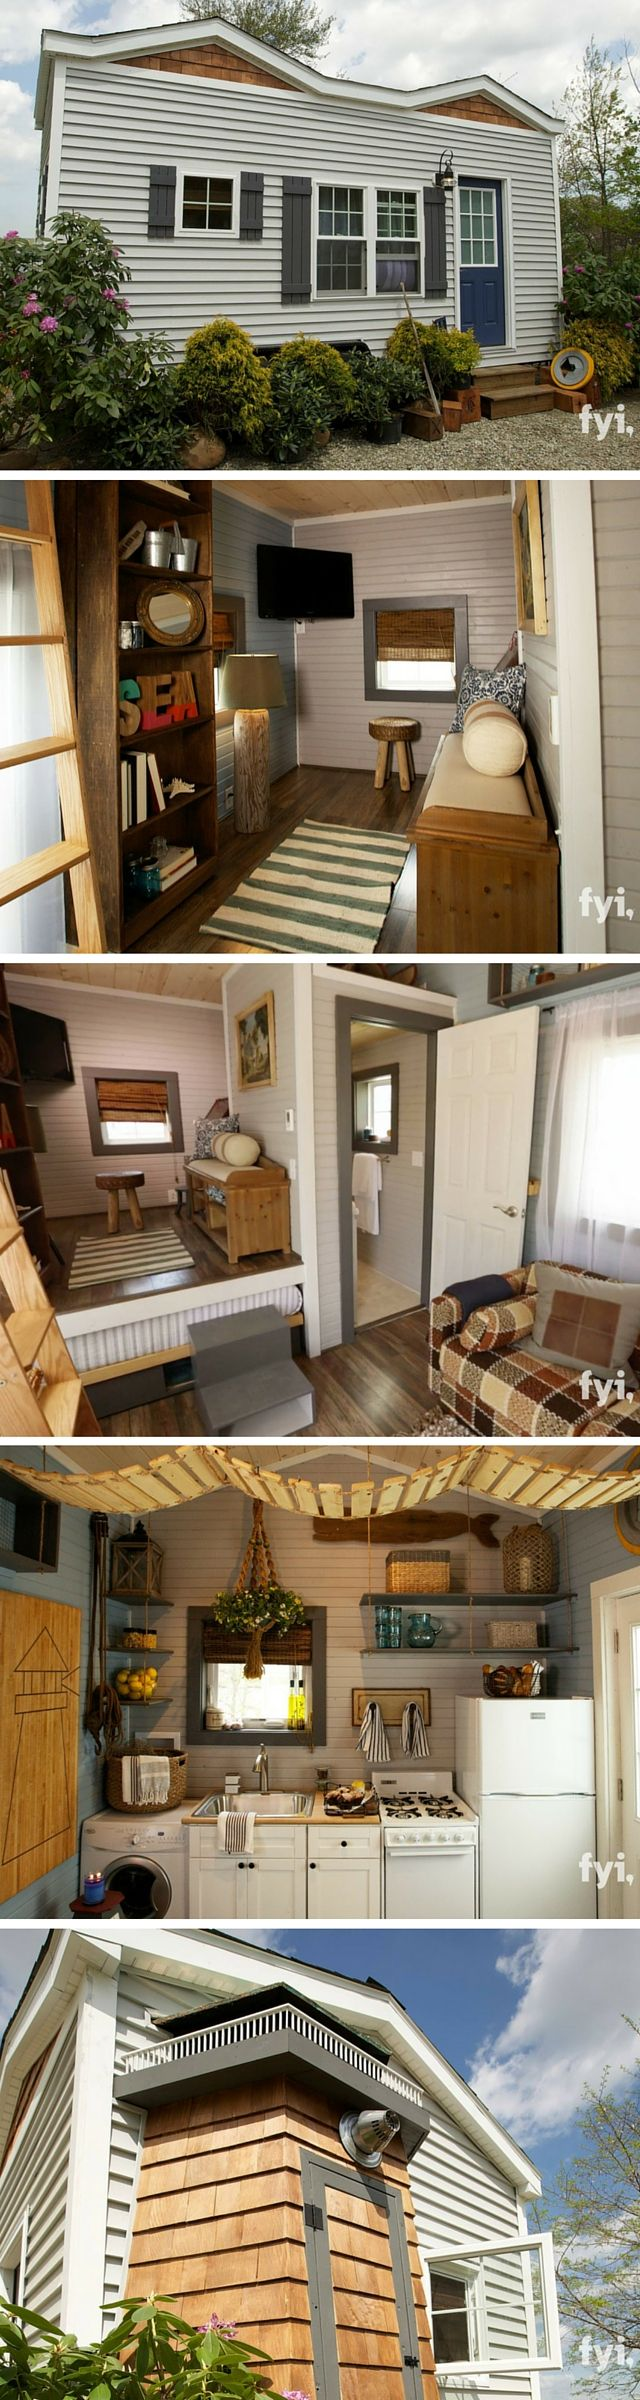 17 Best ideas about Tiny House Layout on Pinterest Tiny homes